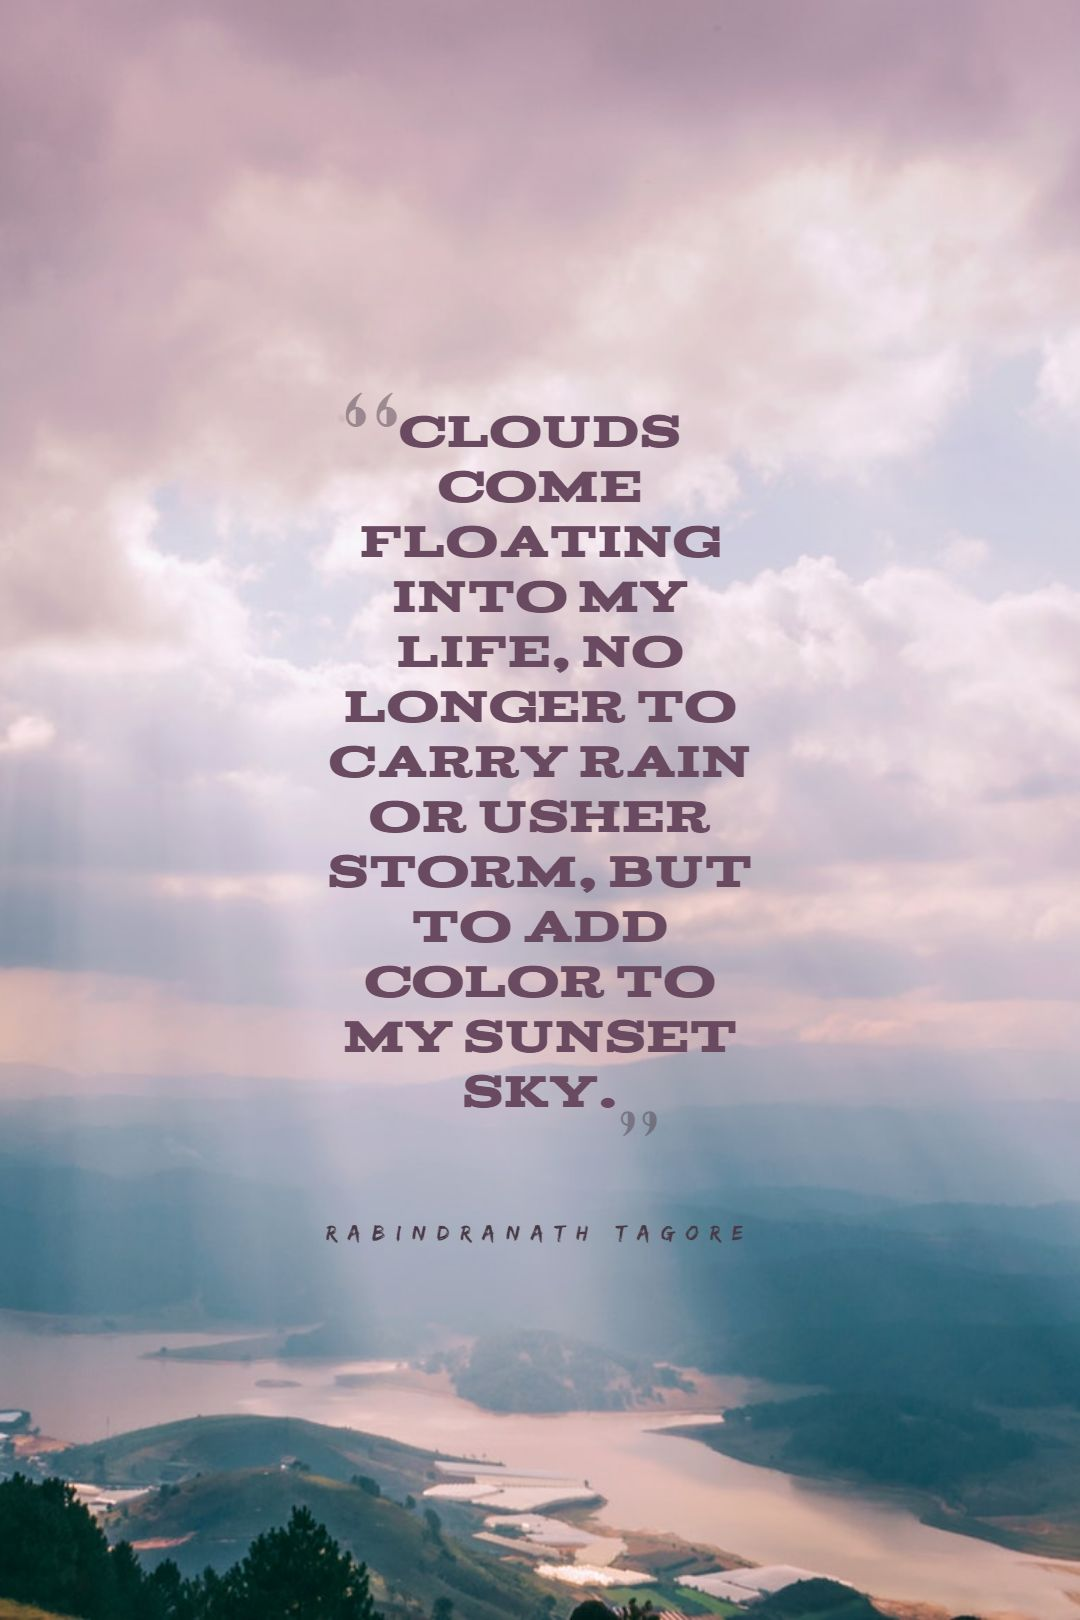 Quotes image of Clouds come floating into my life, no longer to carry rain or usher storm, but to add color to my sunset sky.